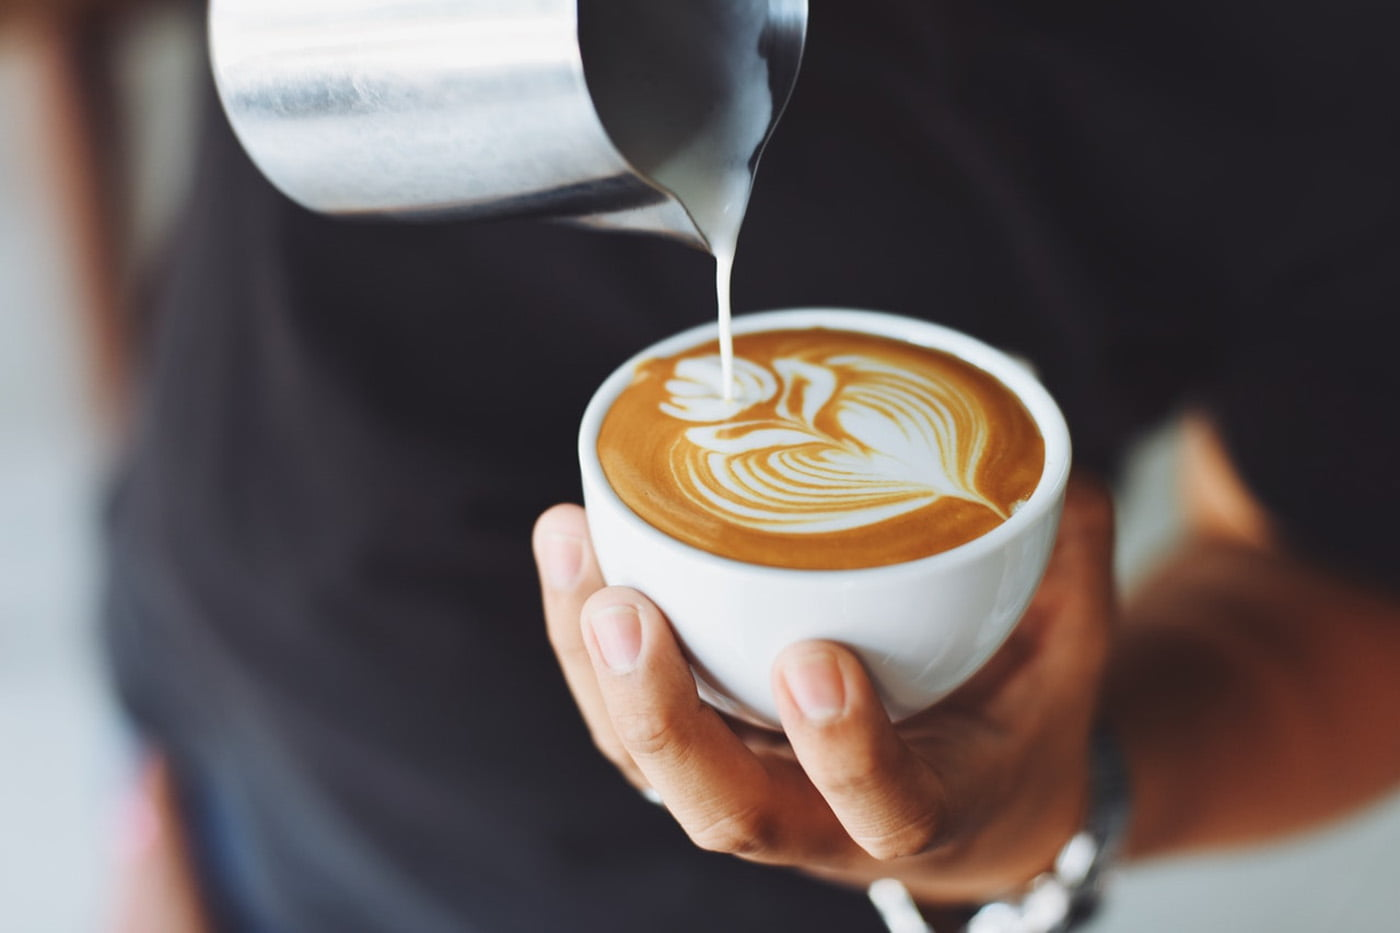 5 of the Best Coffee Houses in the West Midlands for First Dates